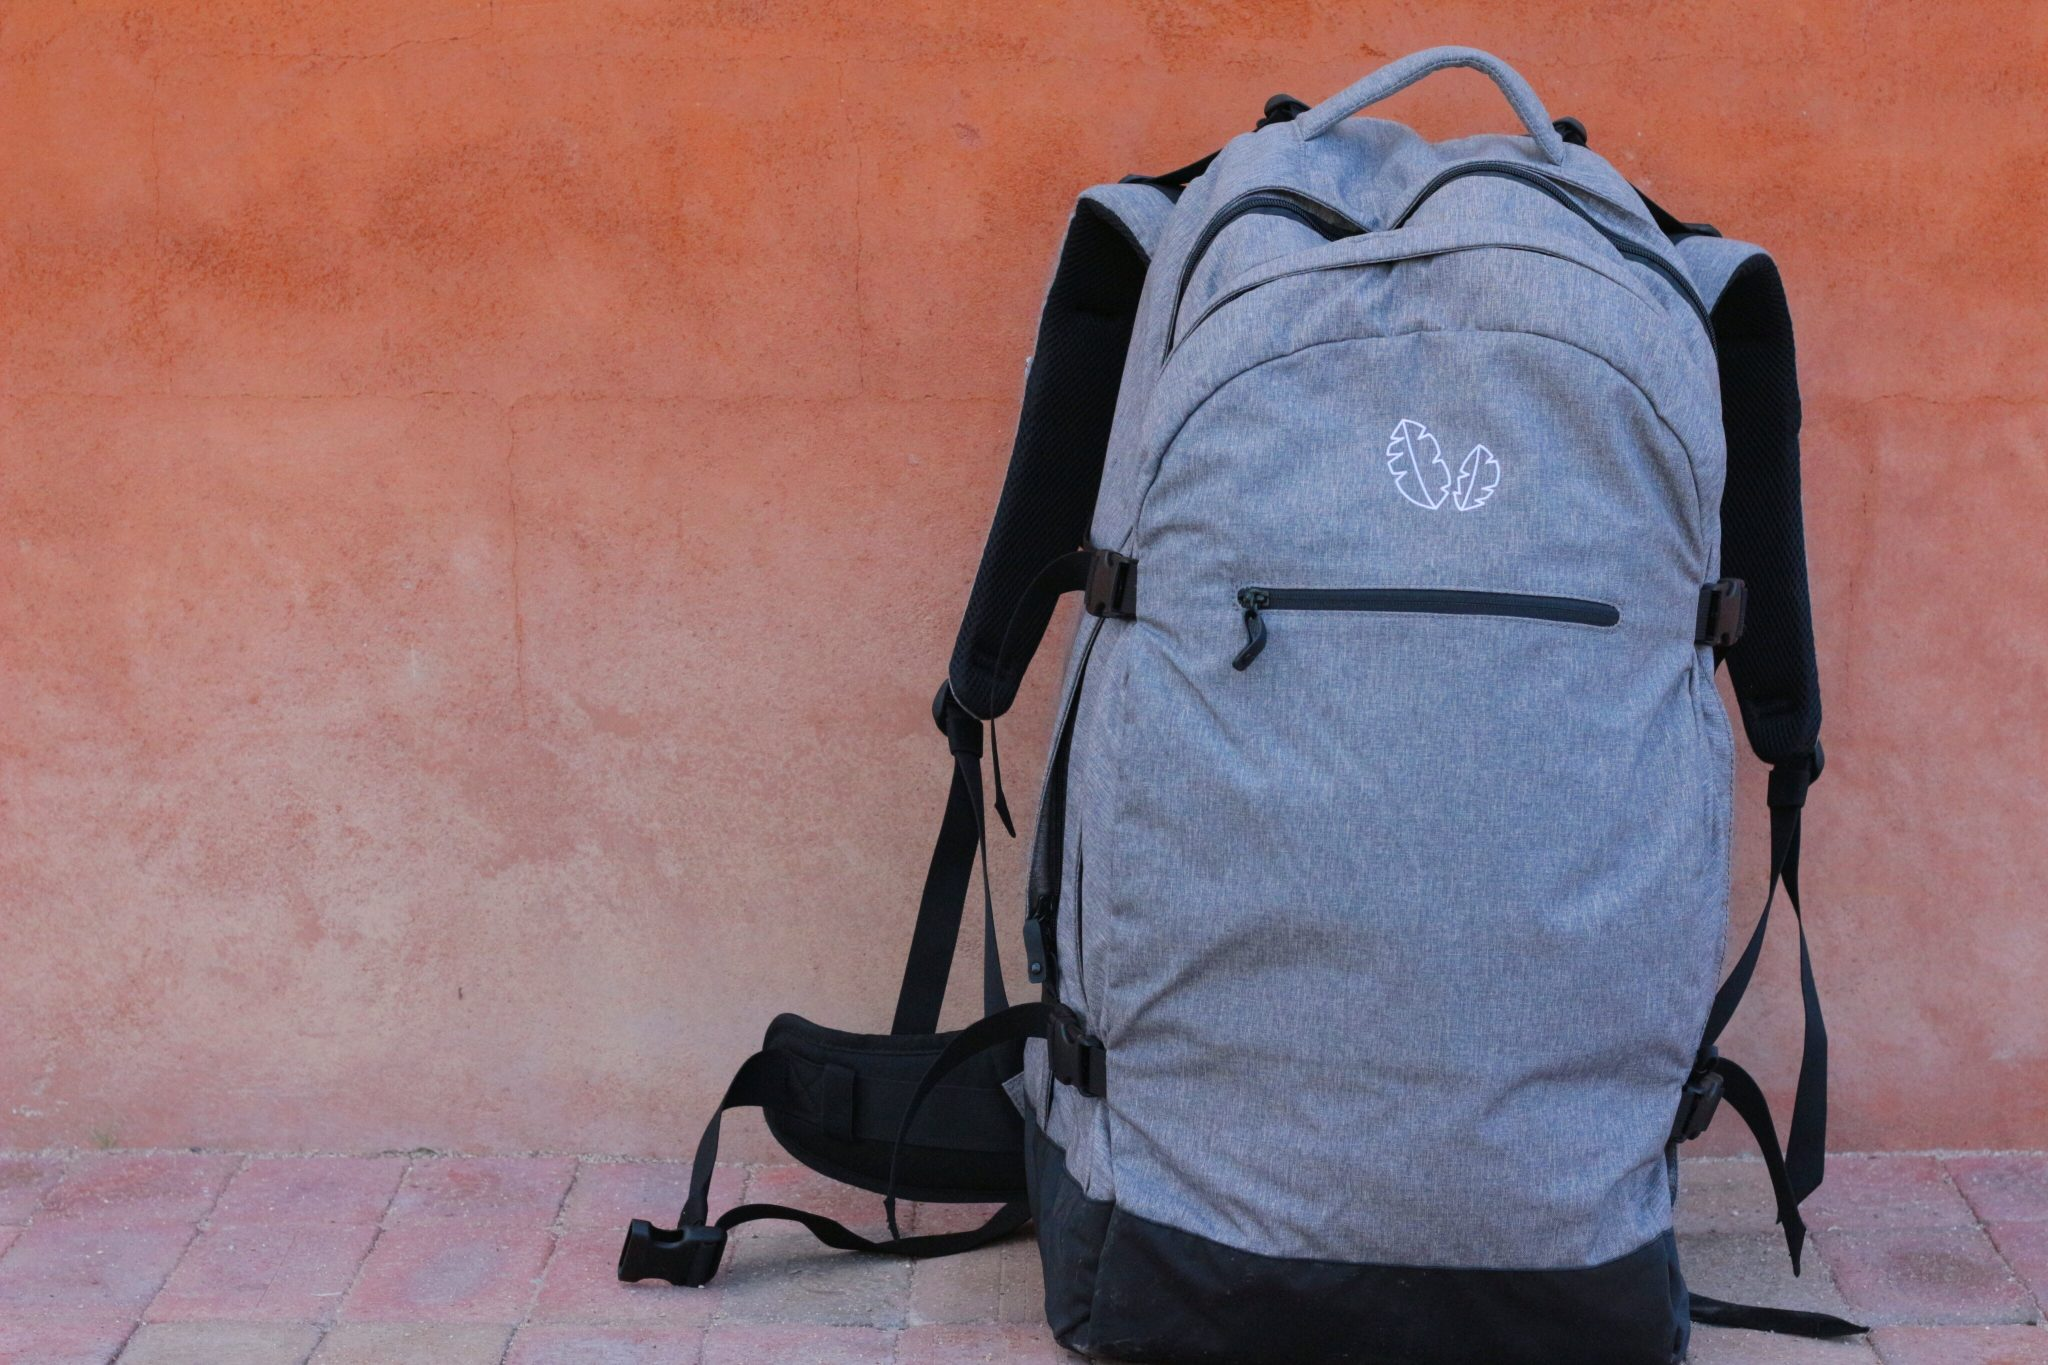 REVIEW: This Travel Backpack For Digital Nomads Is Stylish & Has A Positive Social Impact